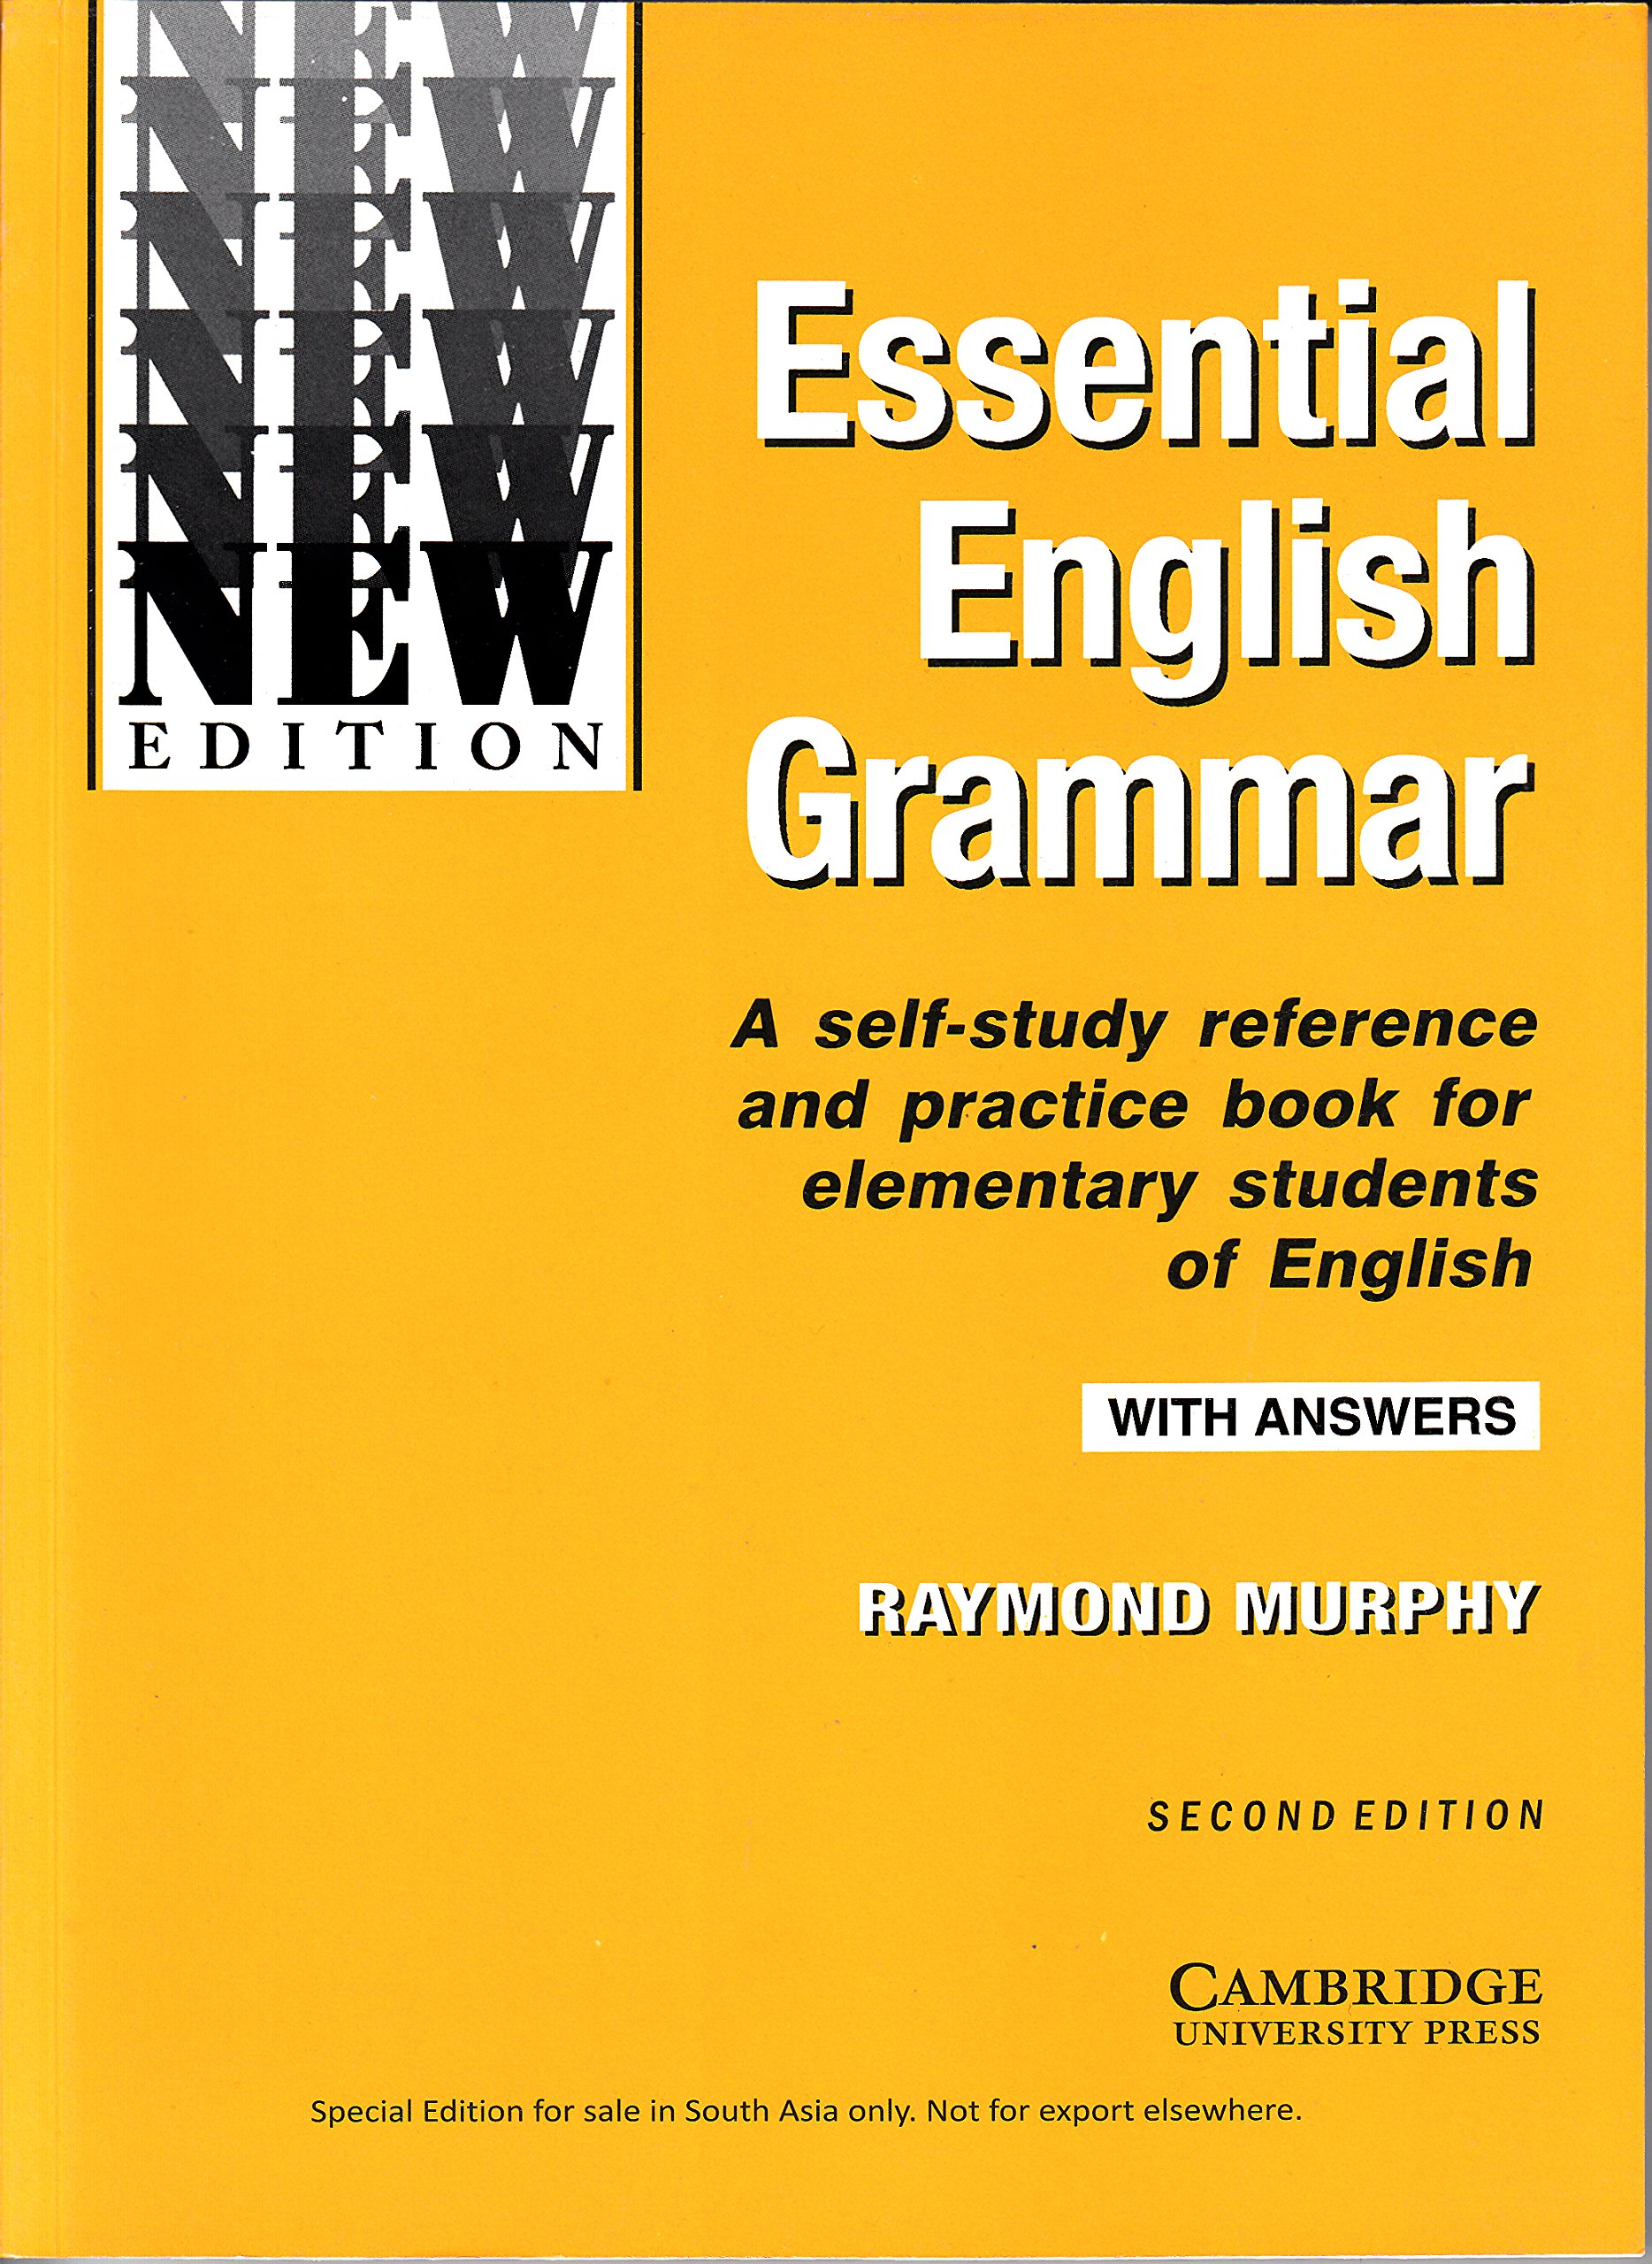 """Essential English Grammar"" by Raymond Murphy"